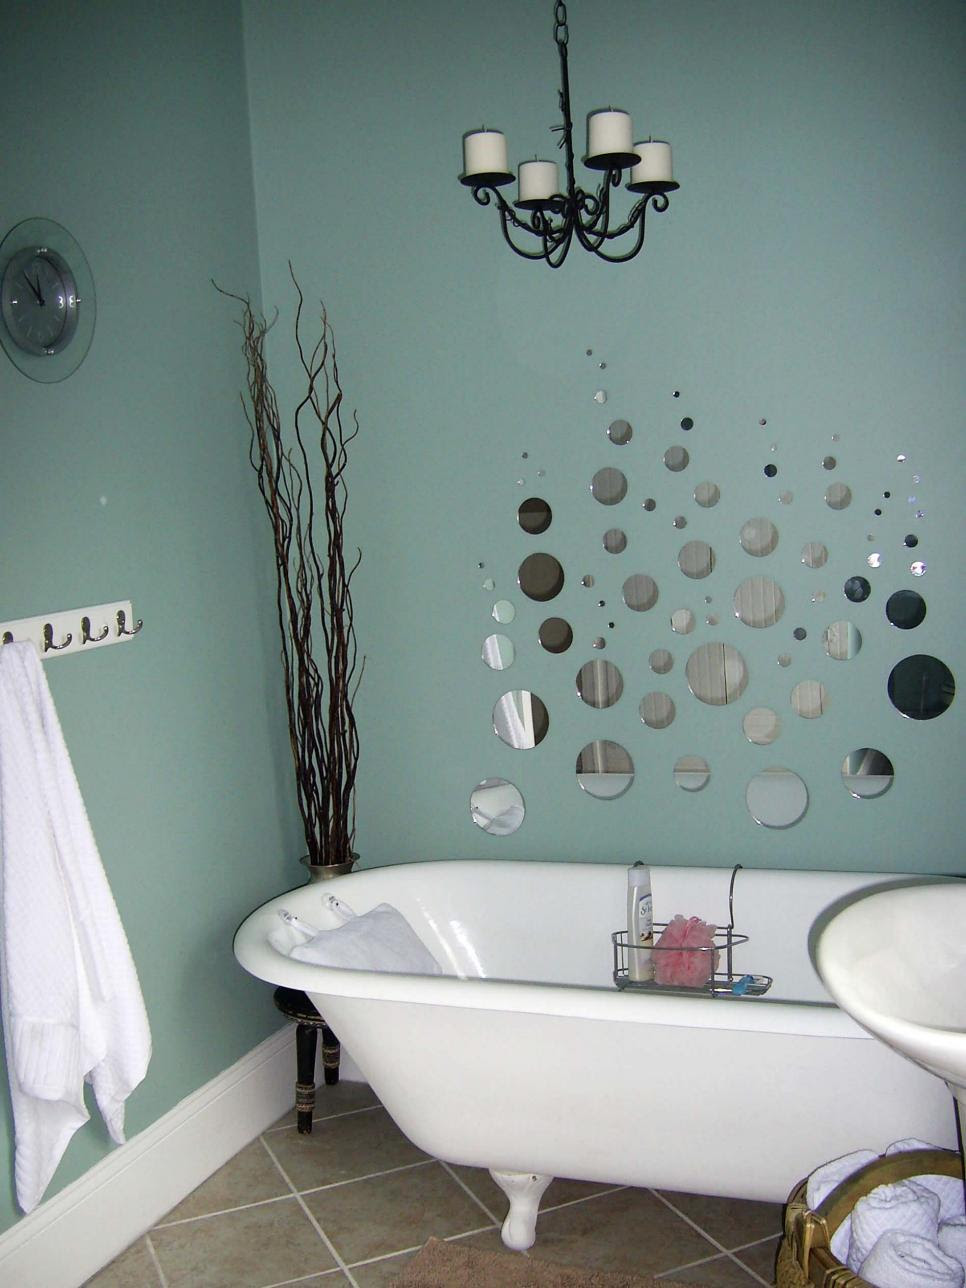 Bathrooms on a Budget: Our 10 Favorites From Rate My Space ...